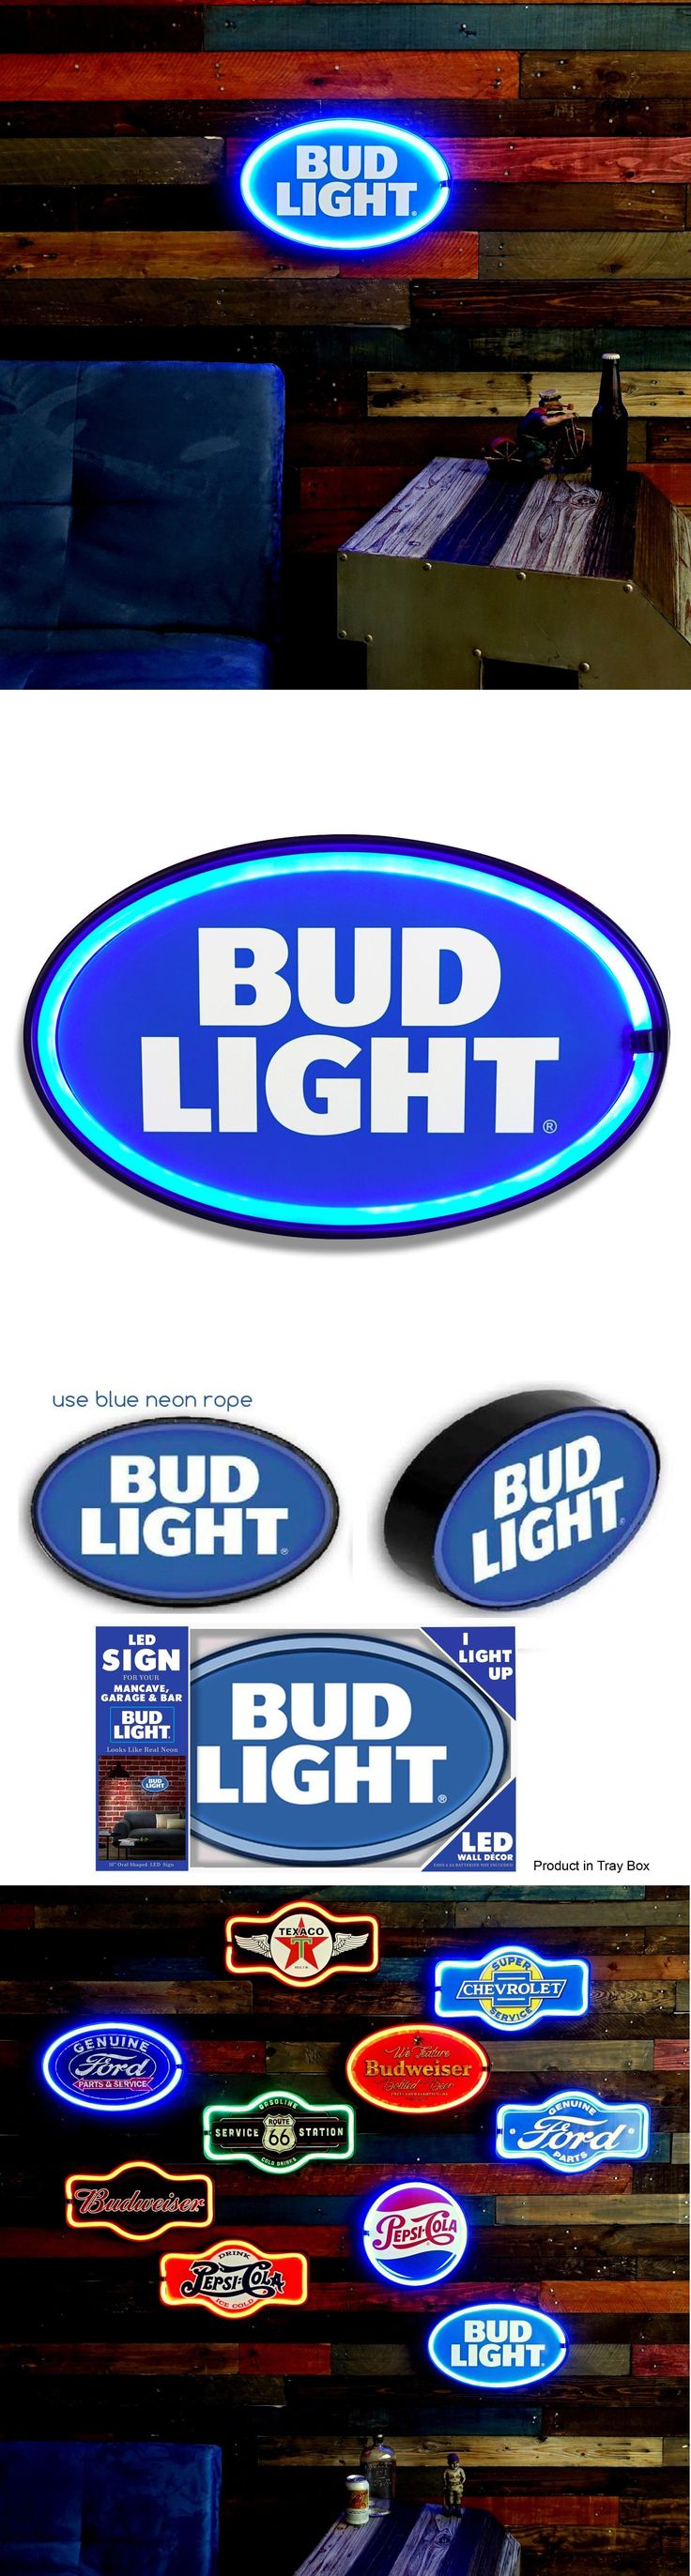 Plaques and Signs 31587: Bud Light Led Neon Lighted 16 Sign, Battery Or Usb, Garage, Bar, Home, Man Cave -> BUY IT NOW ONLY: $34.99 on eBay!